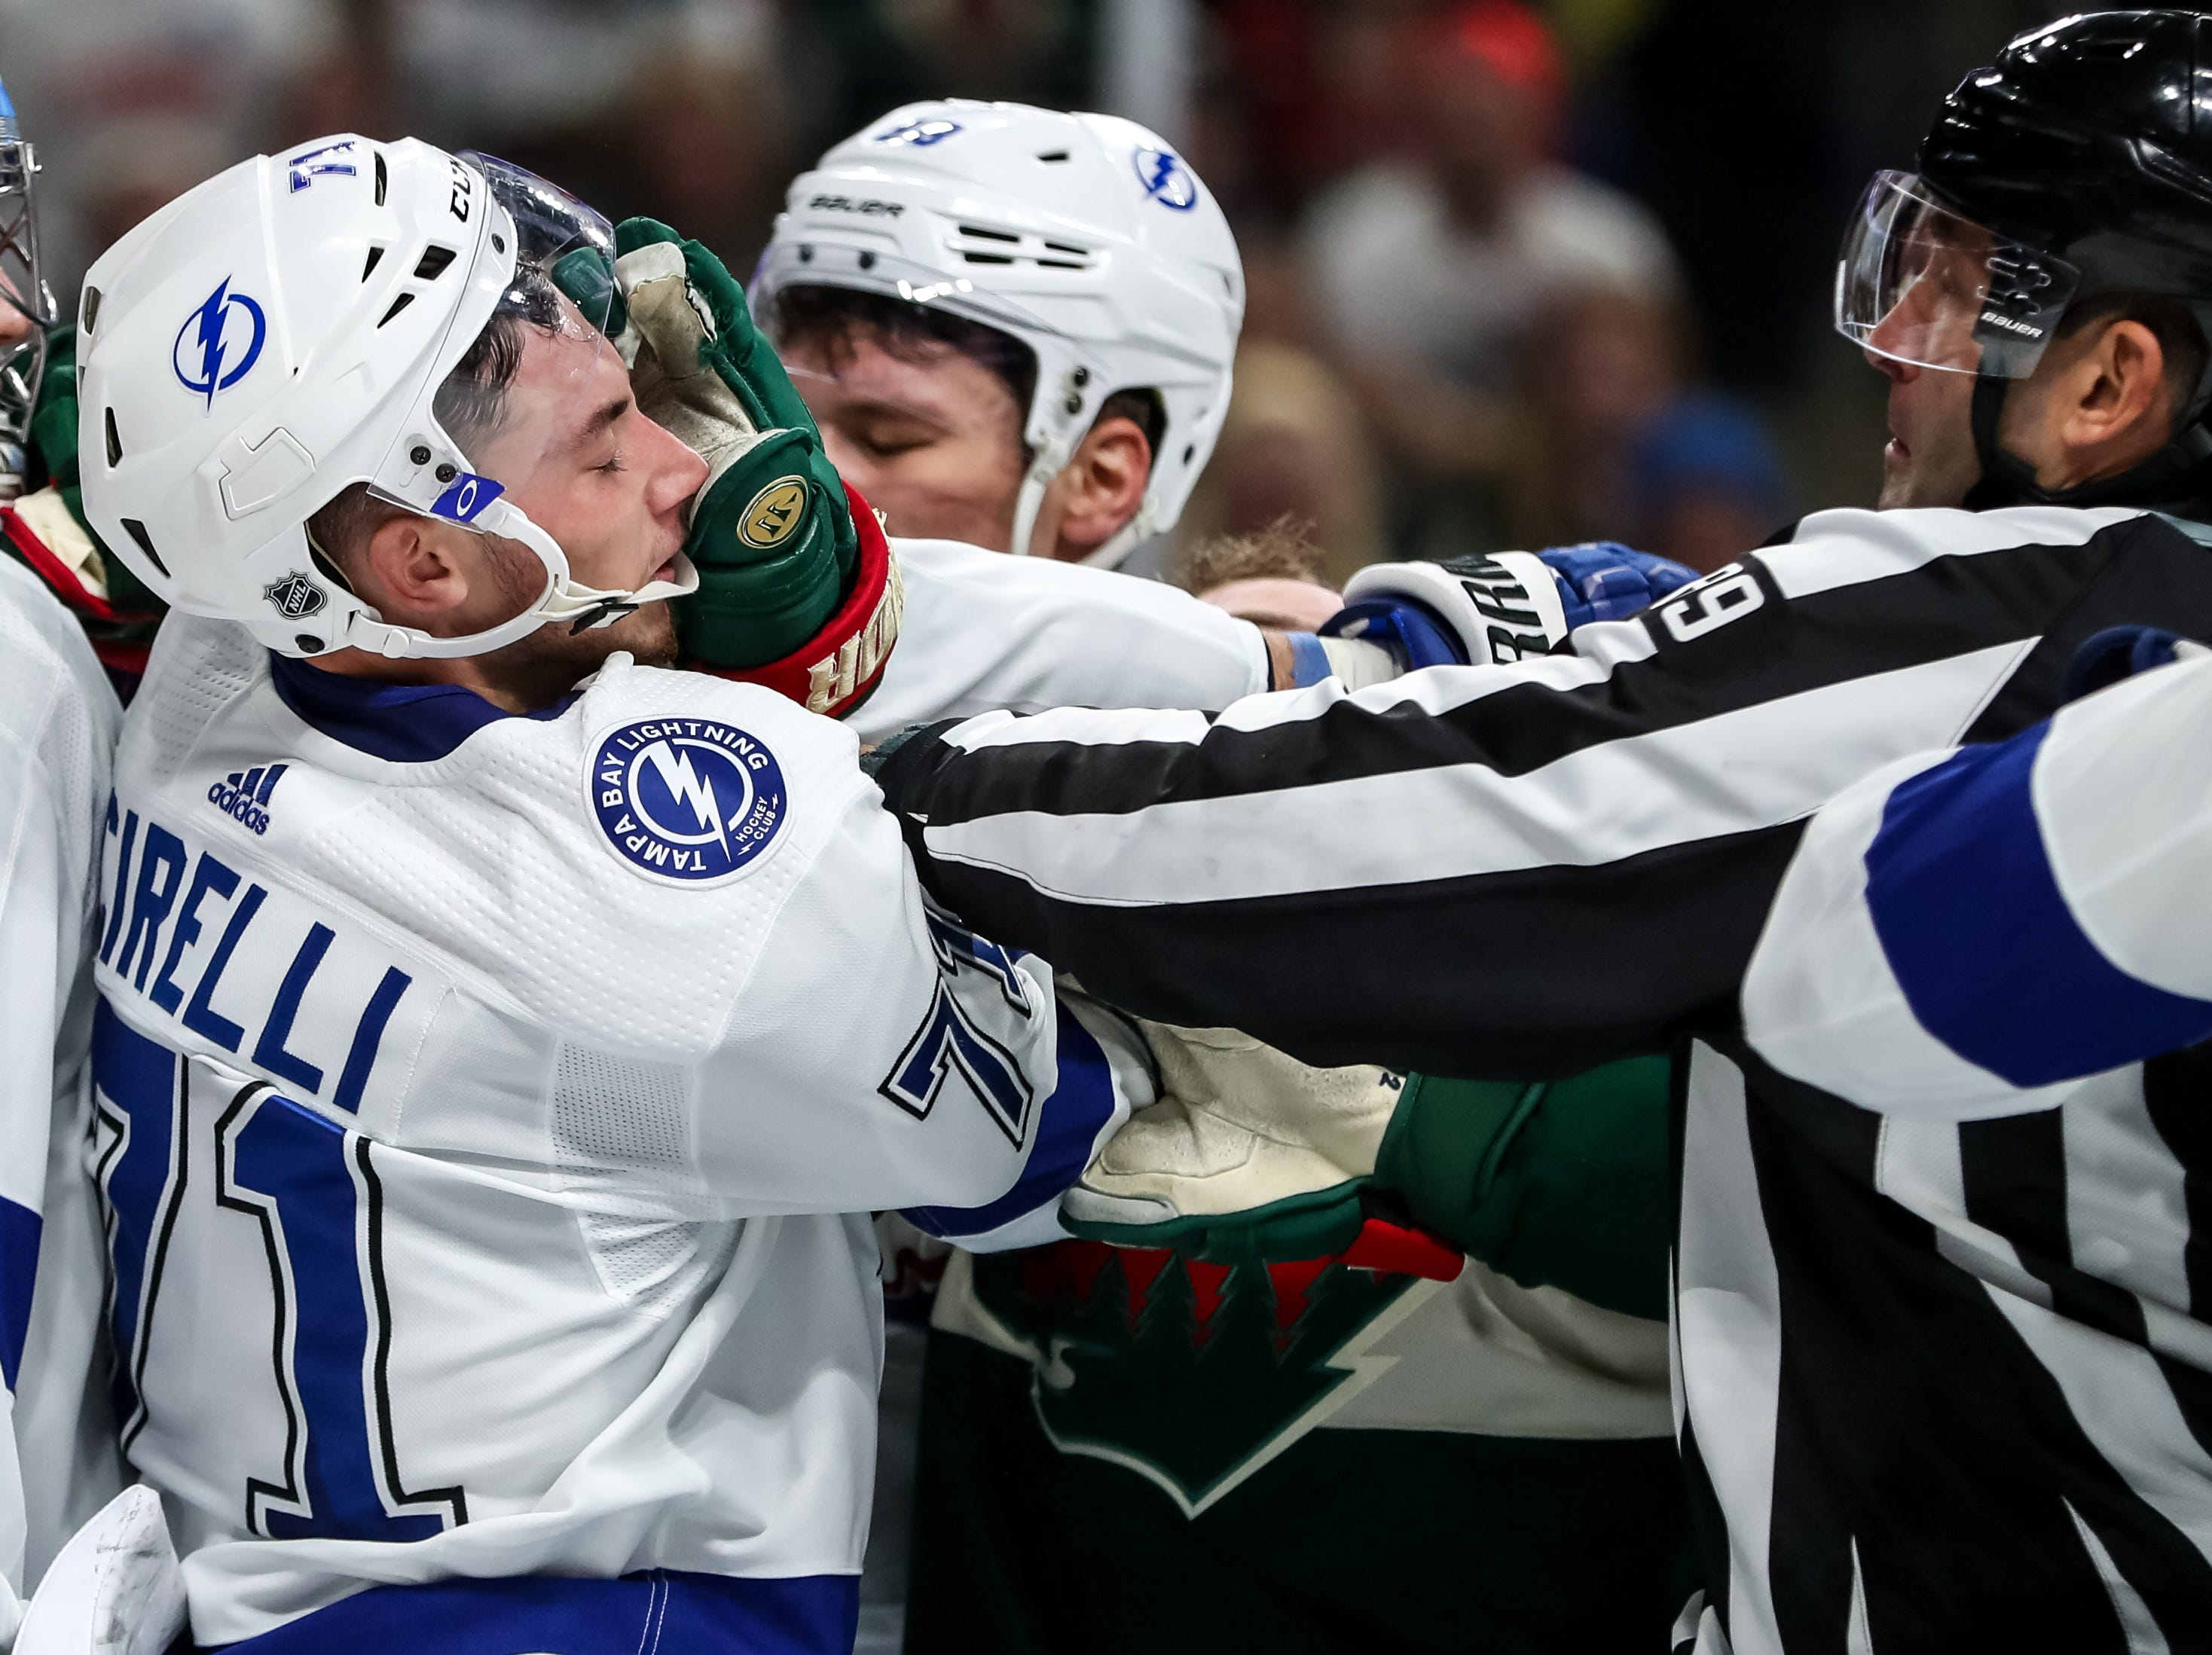 Oct. 20: Tampa Bay Lightning forward Anthony Cirelli (71) takes a hand to the face from Minnesota Wild forward Jason Zucker (16) during the second period at Xcel Energy Center.